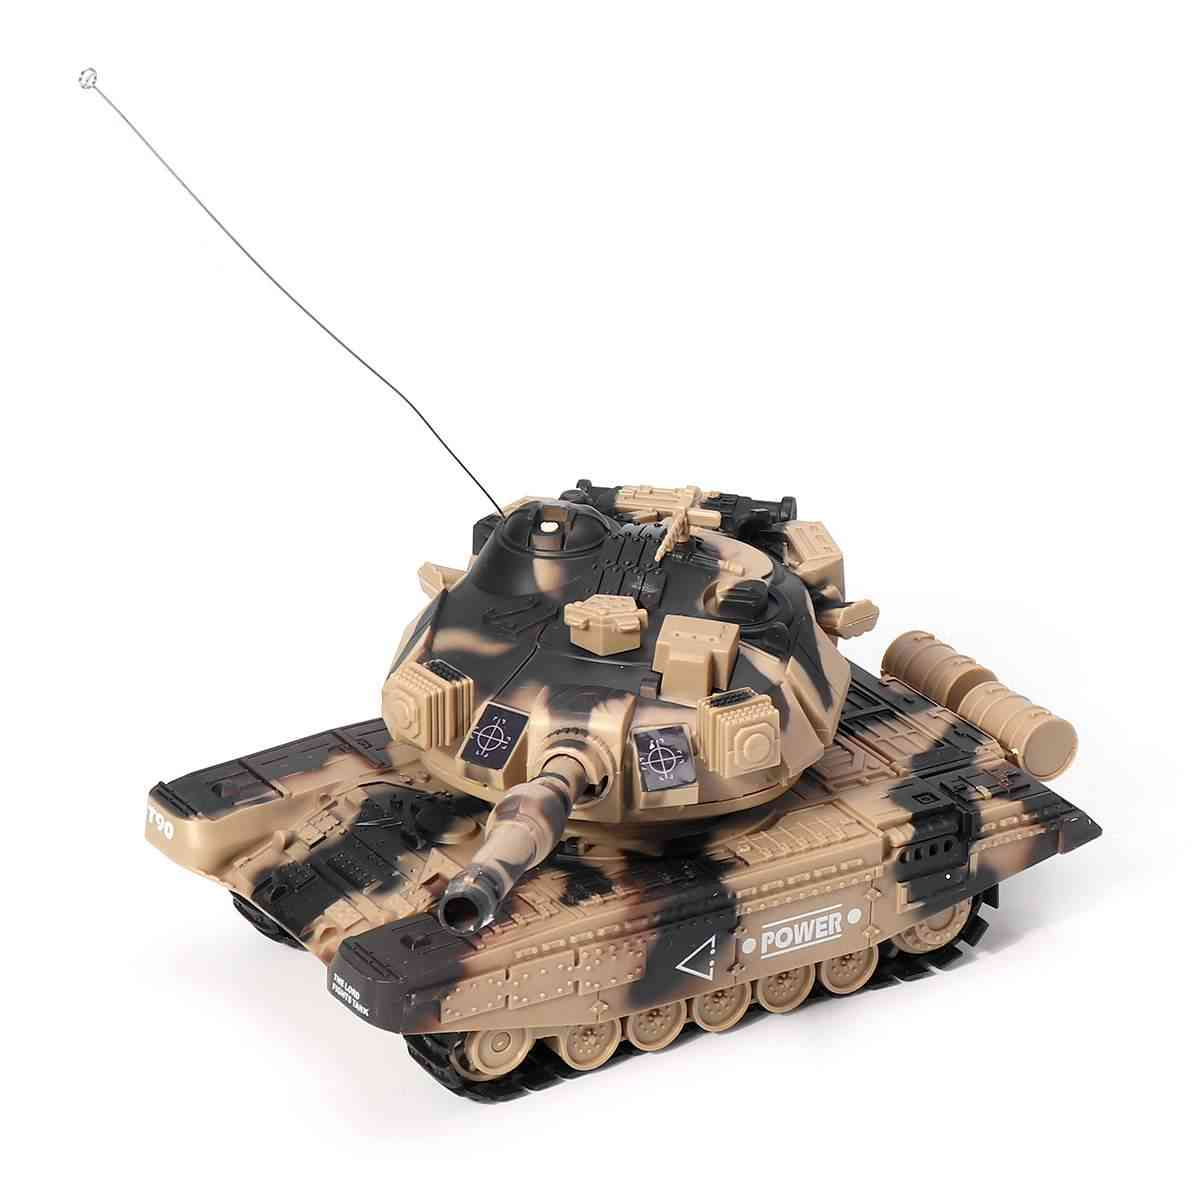 1:32 Military Remote Control War Tank With Shoot Bullets-electronic